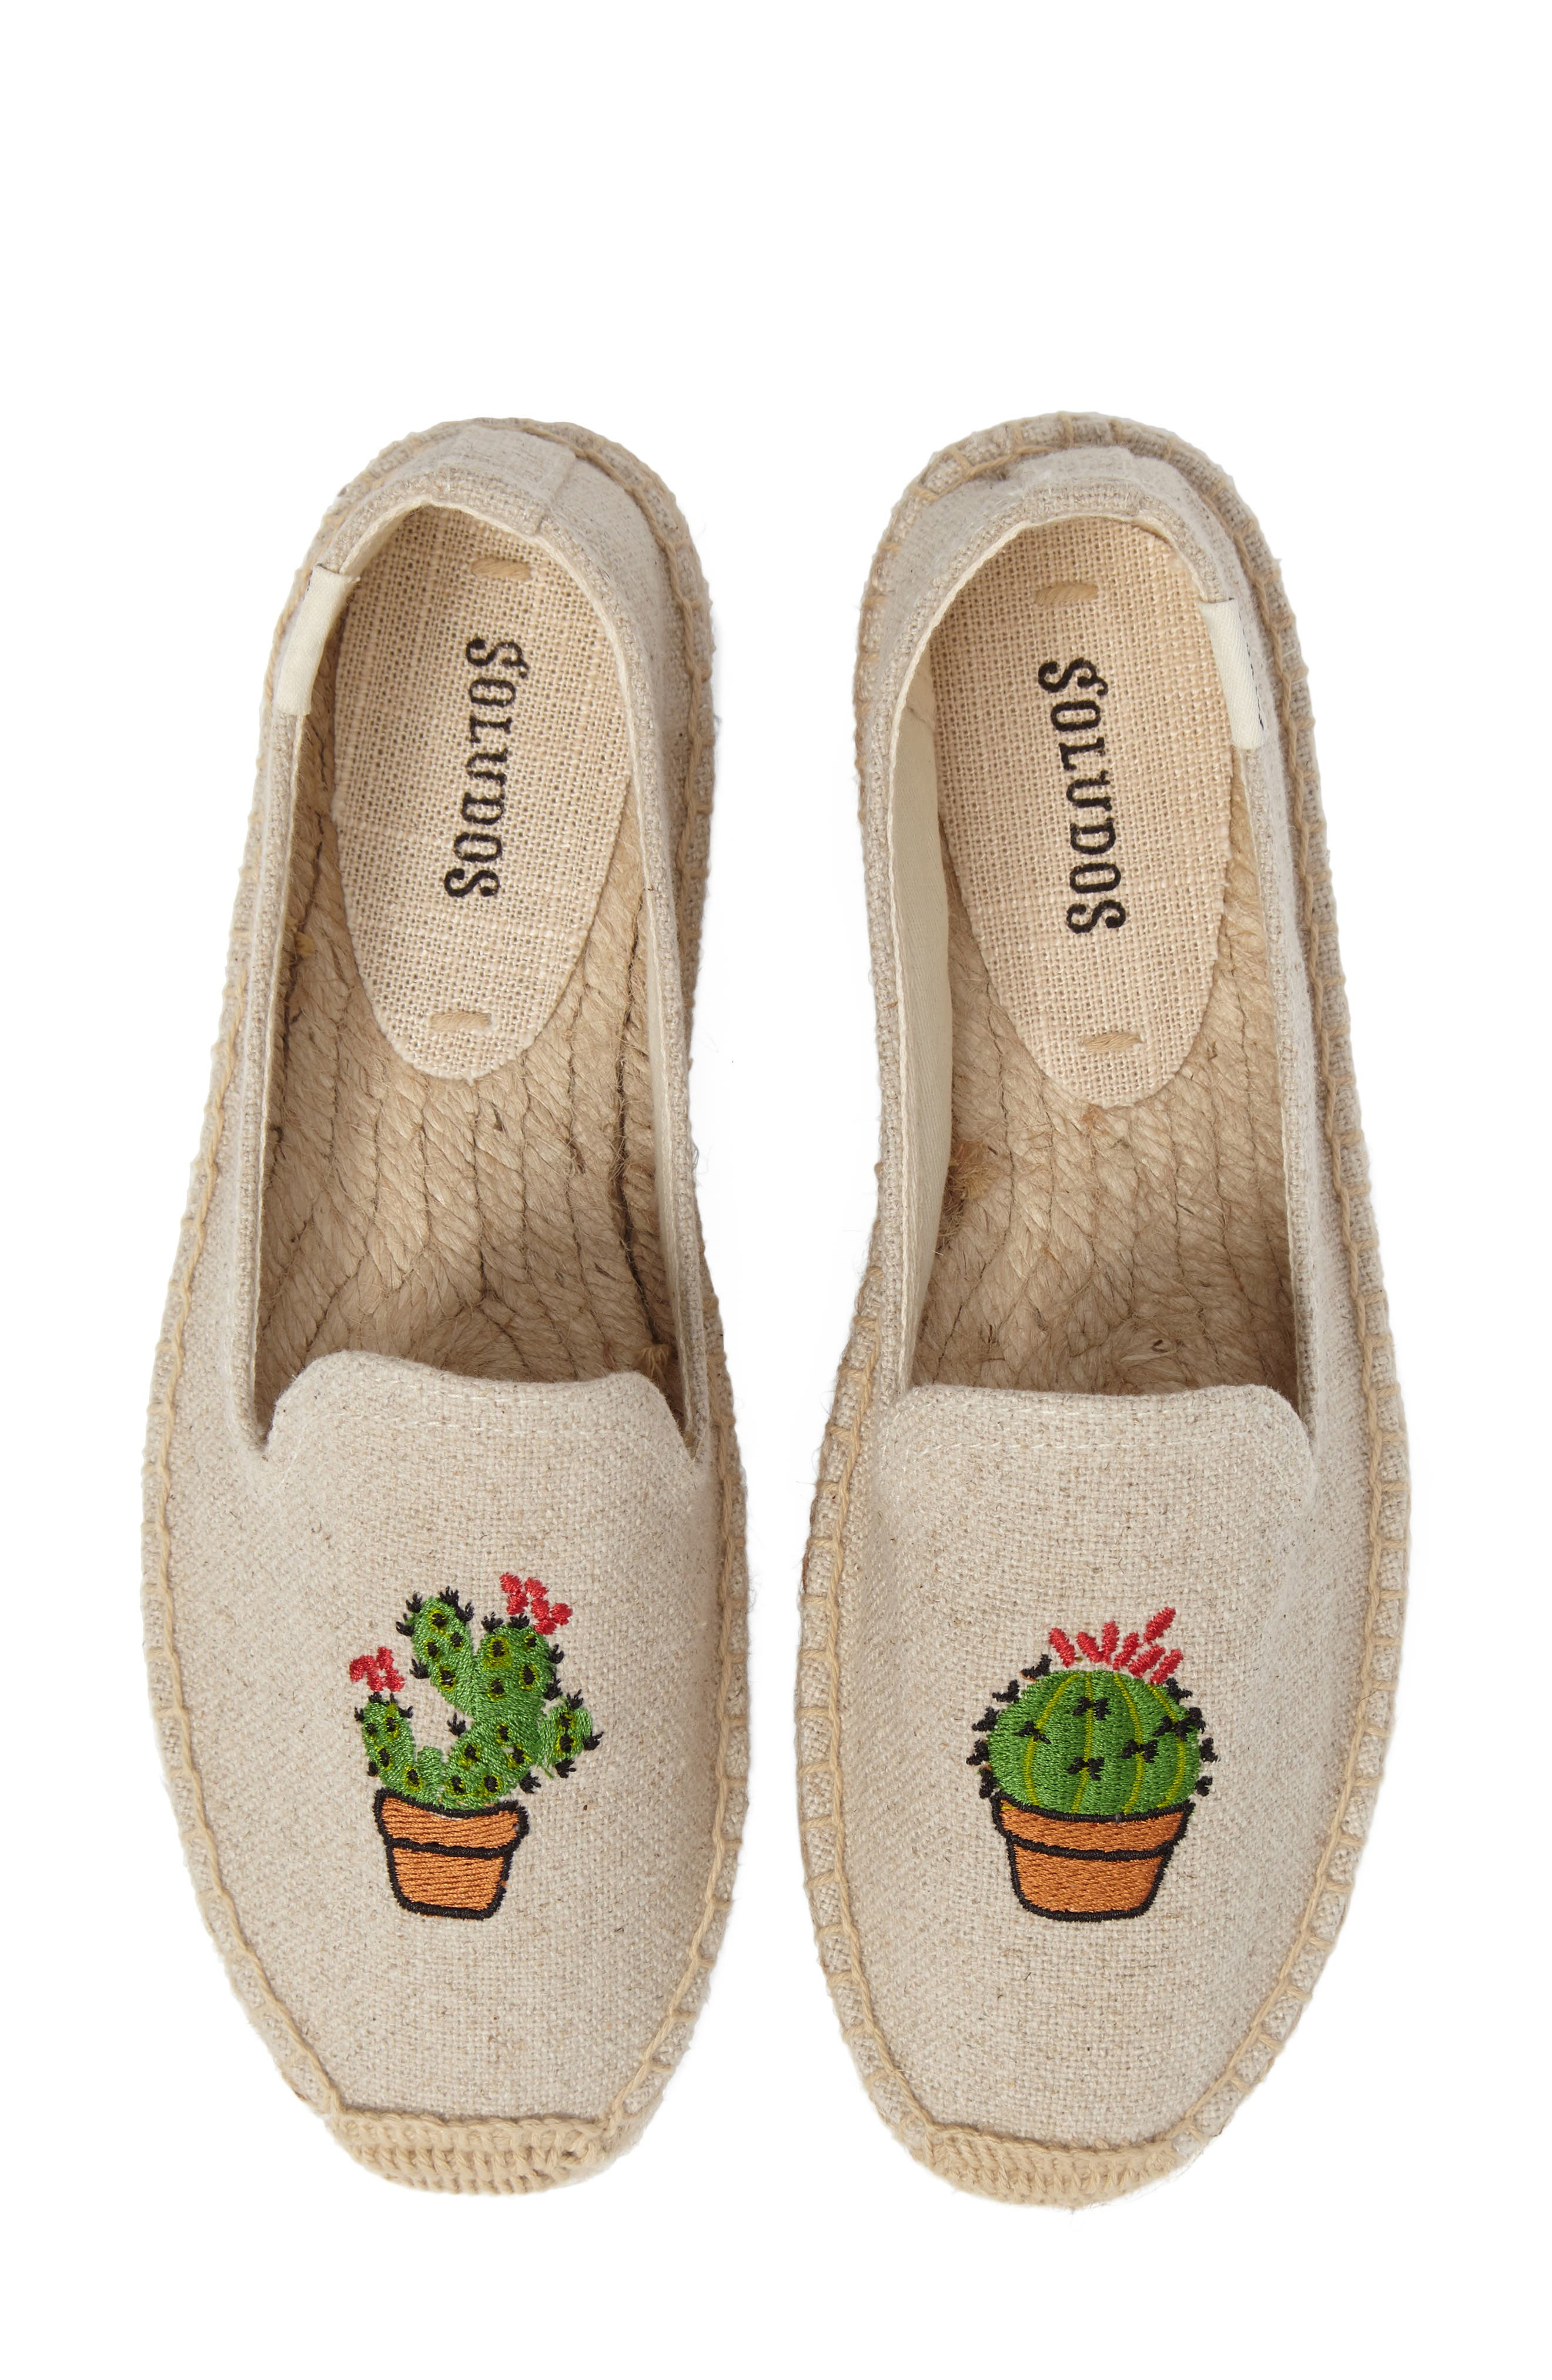 Alternate Image 1 Selected - Soludus Cactus Platform Espadrille (Women)